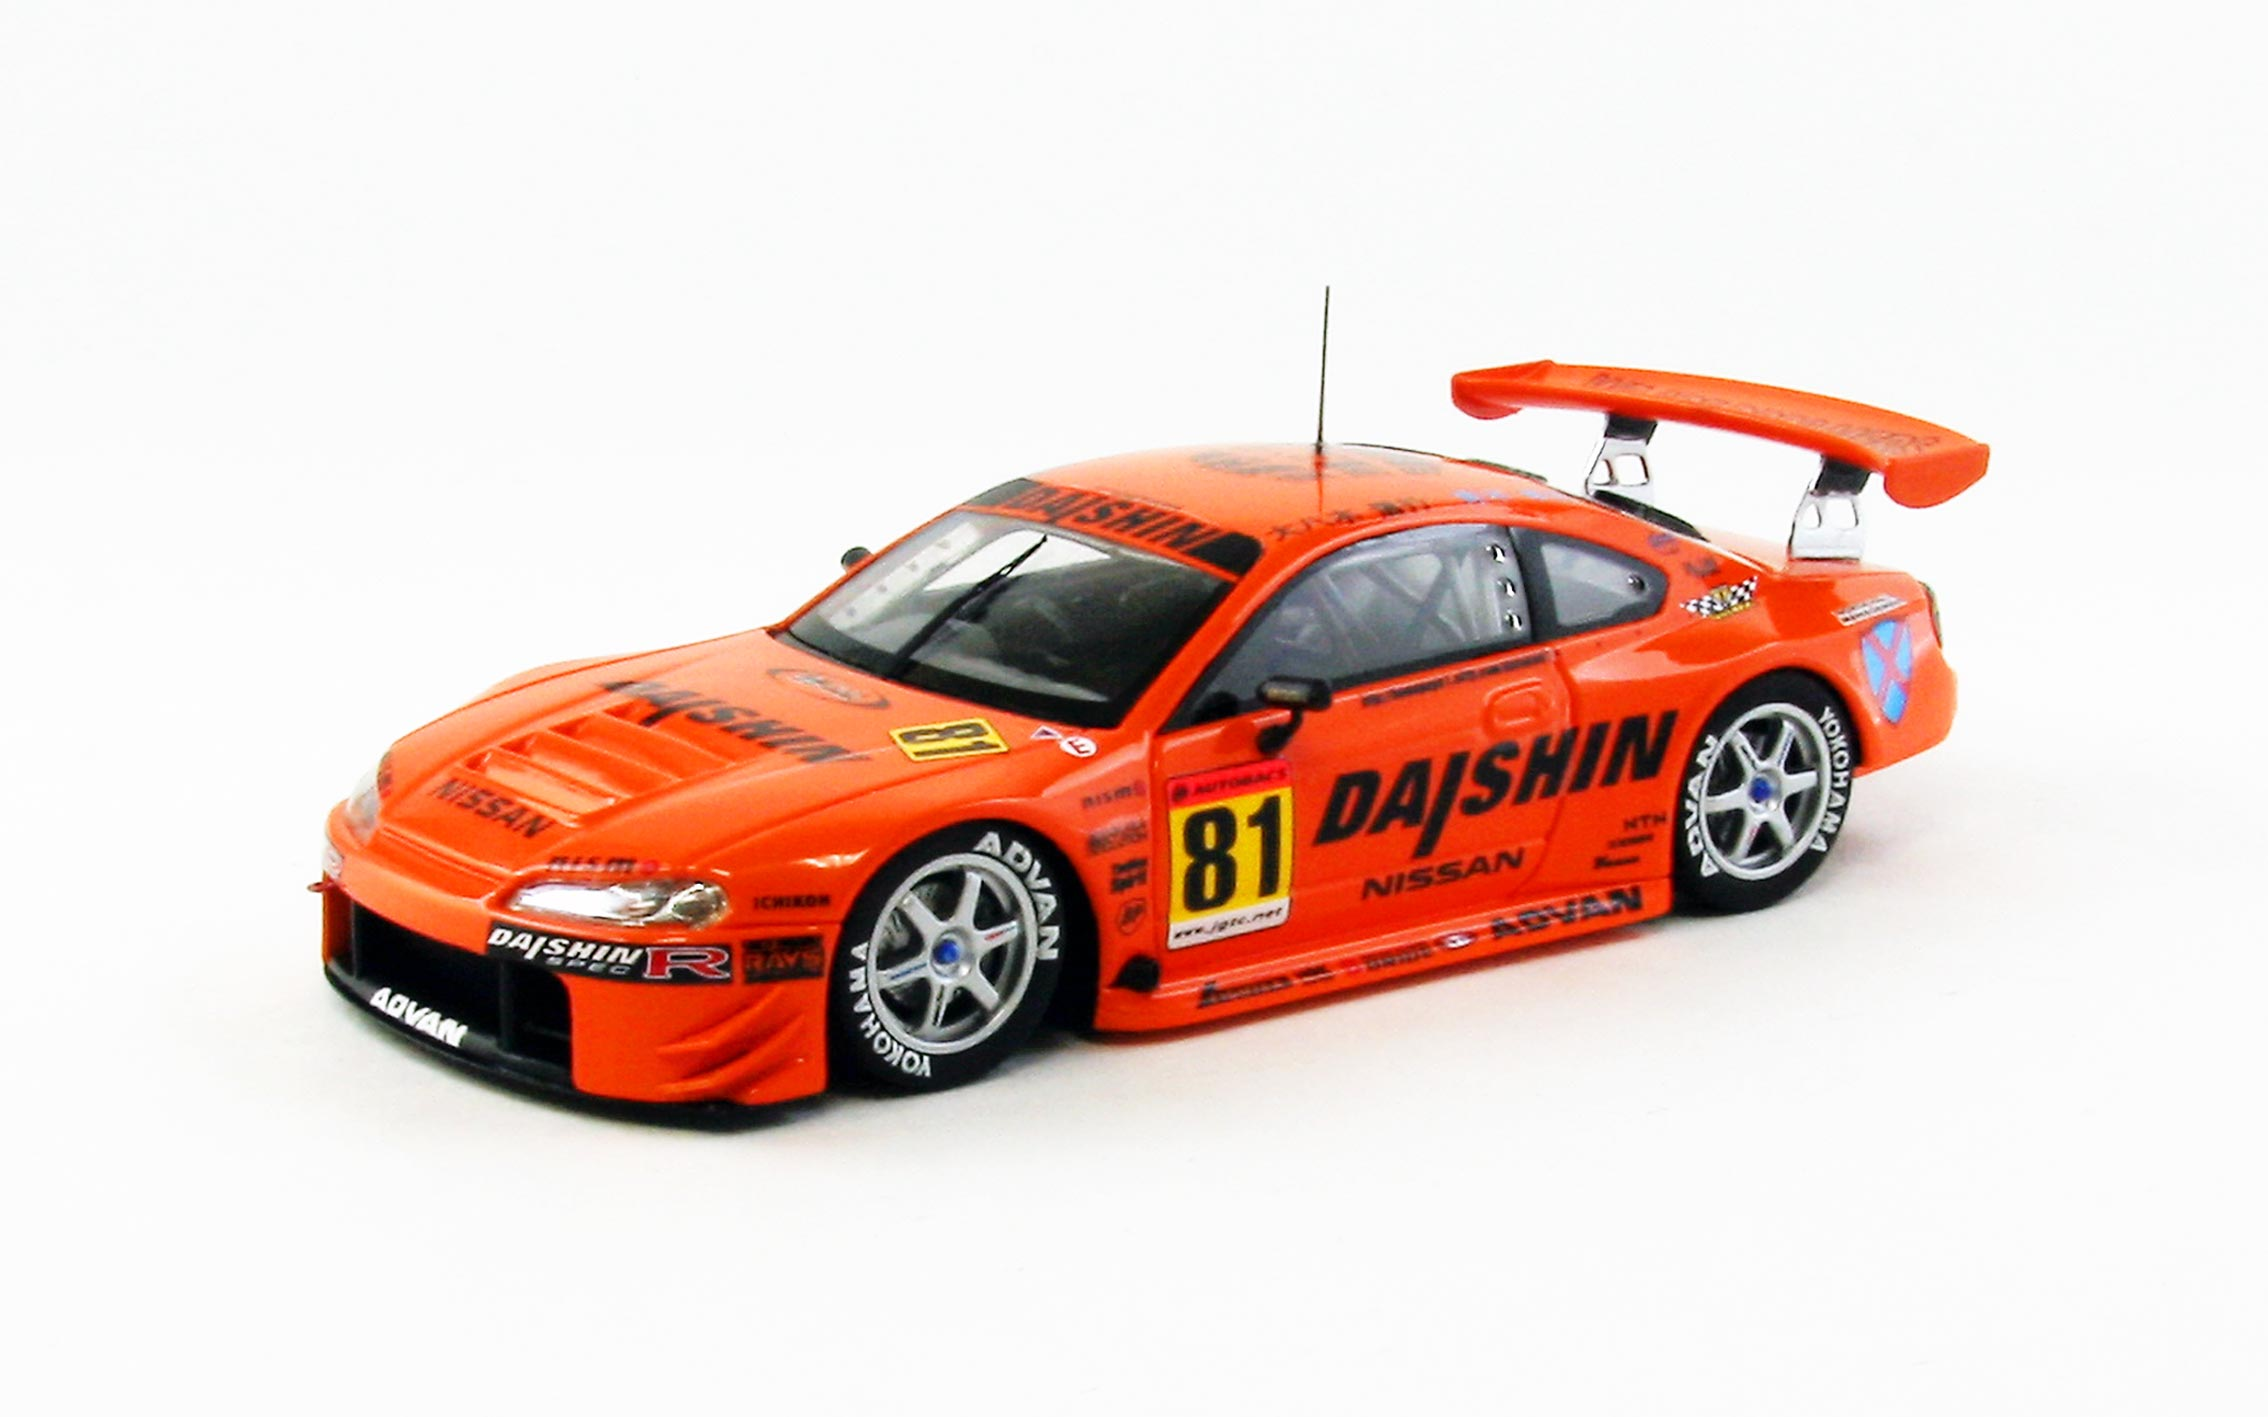 【44968】DAISHIN ADVAN SILVIA JGTC 2001 No.81 【RESIN】